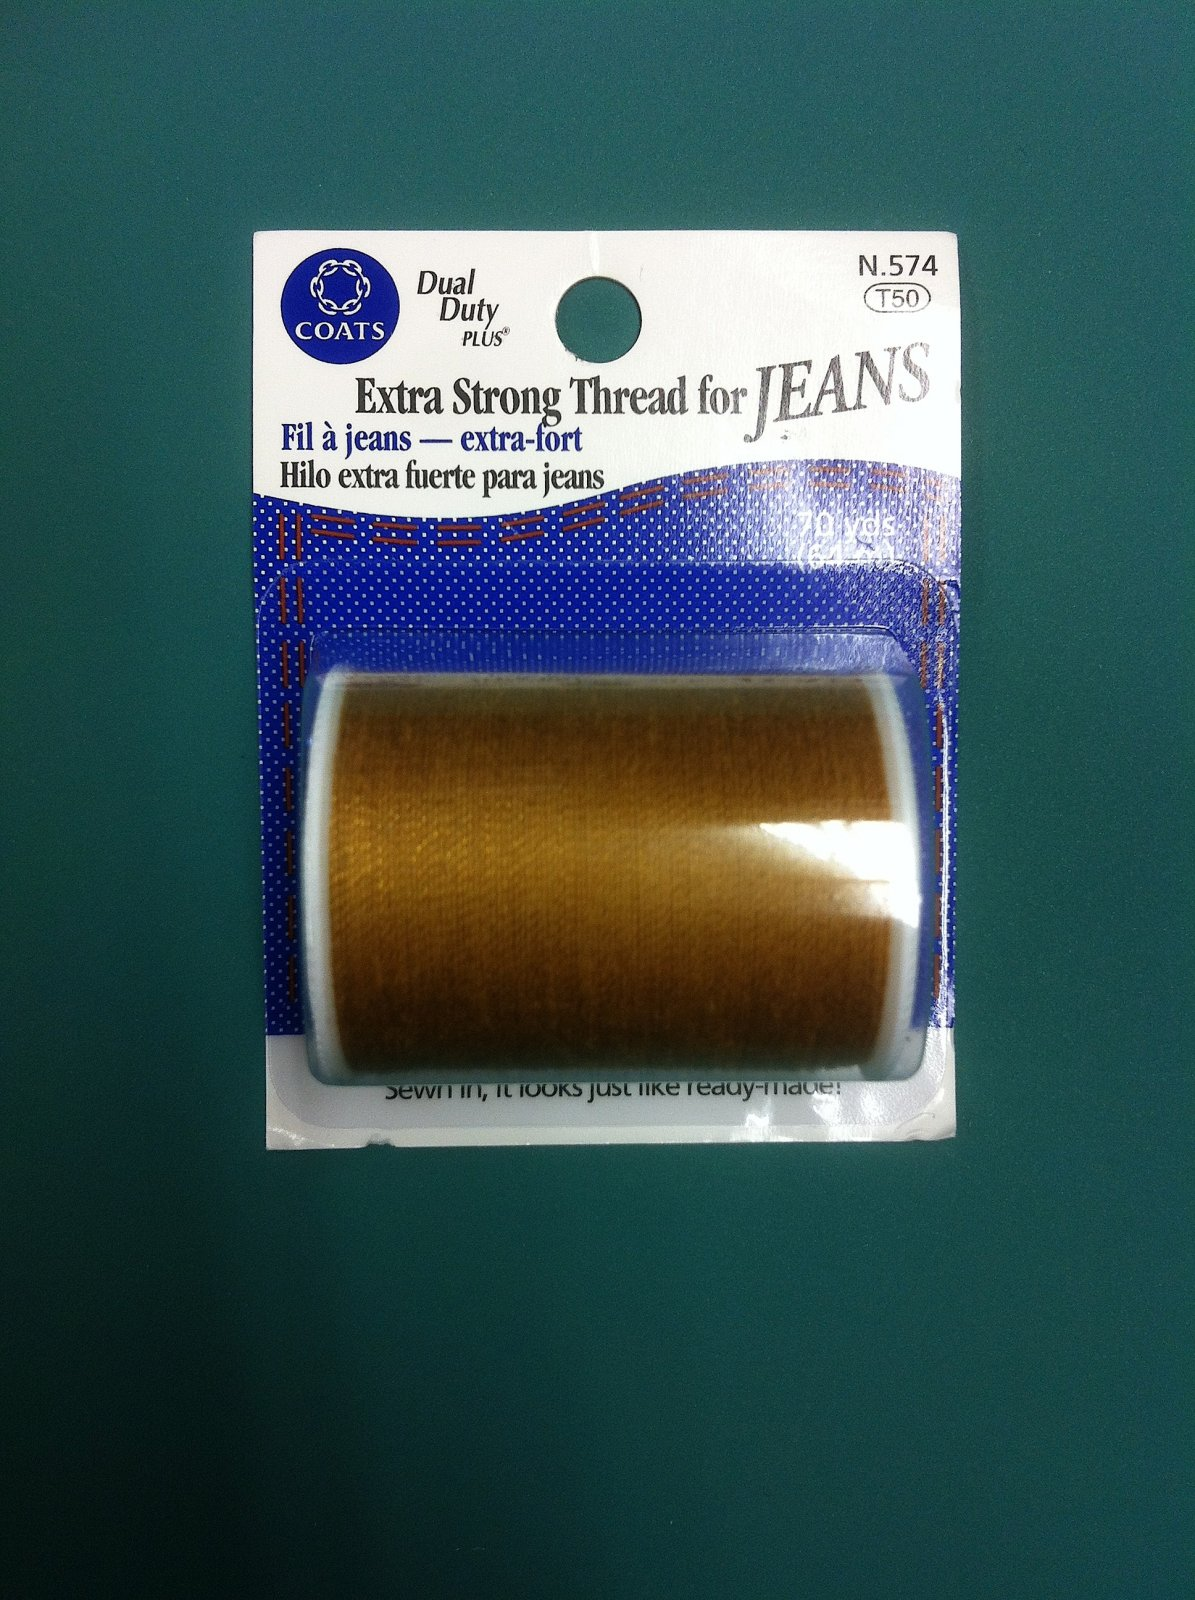 Extra Strong Thread for Jeans